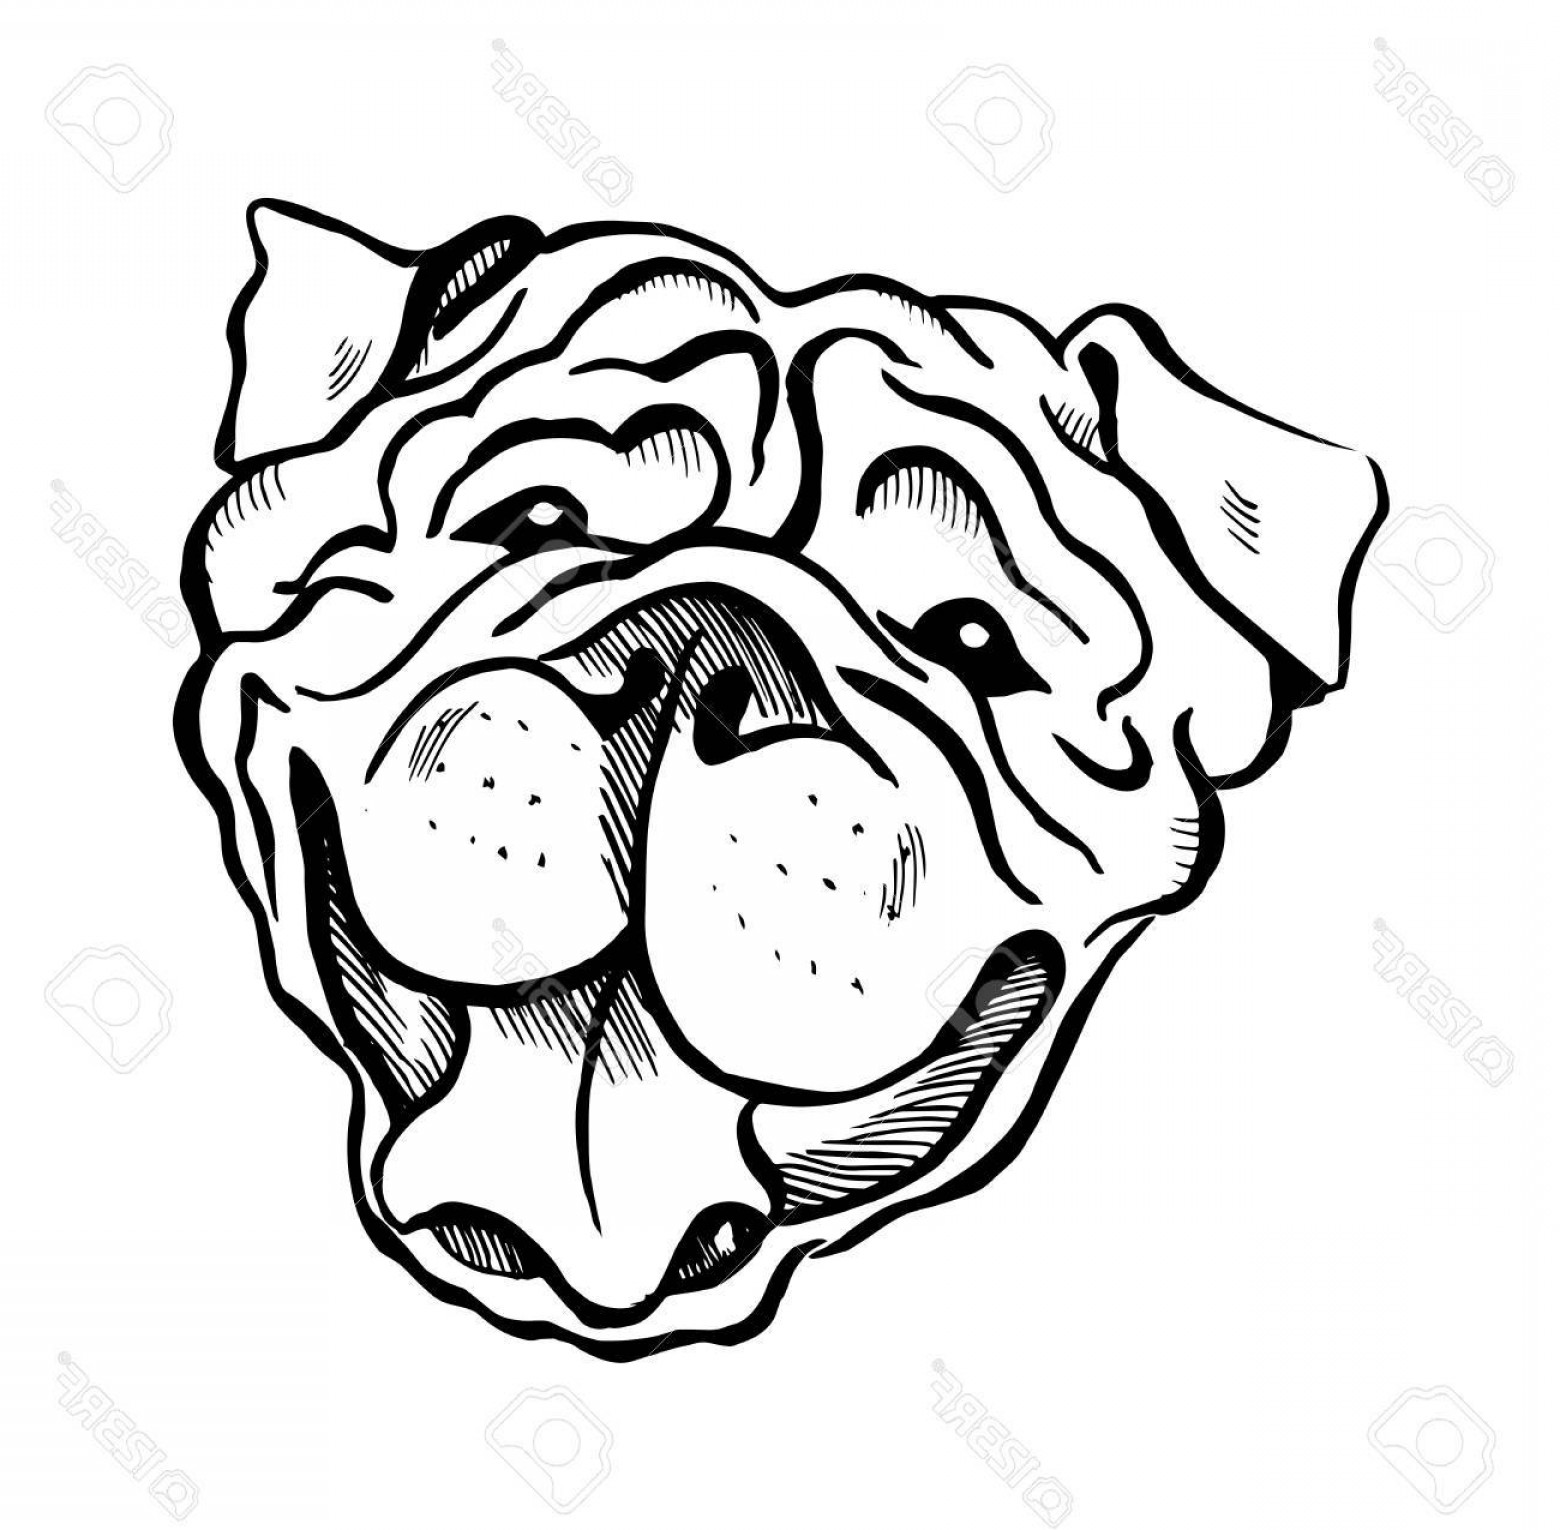 Vector Smiling Bulldog: Photostock Vector English Bulldog Smiling Dog Face Portrait Sketch Black And White Vector Illustration